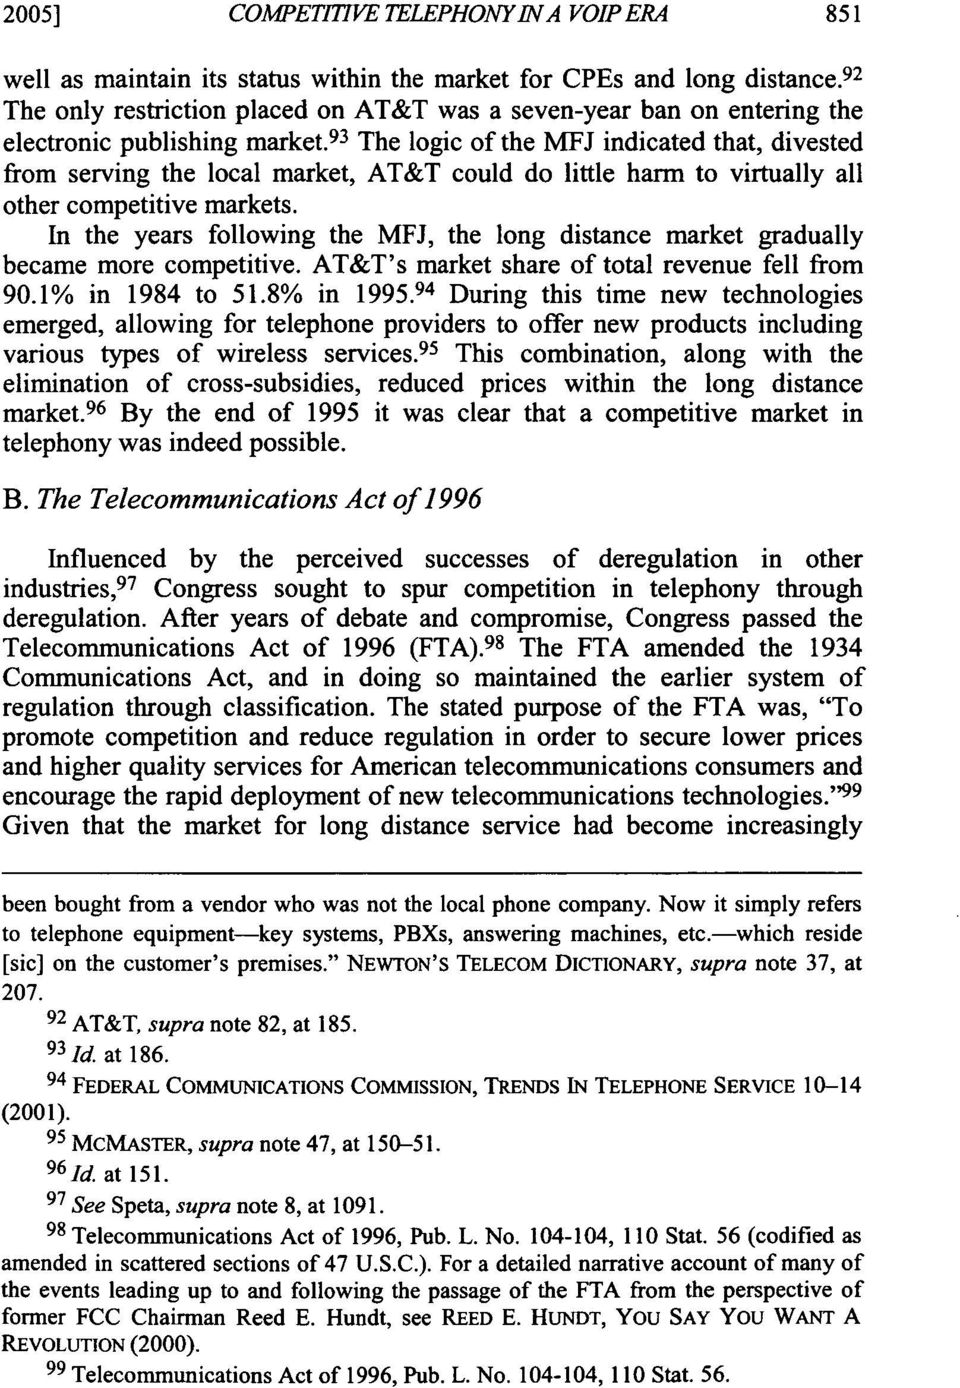 93 The logic of the MFJ indicated that, divested from serving the local market, AT&T could do little harm to virtually all other competitive markets.